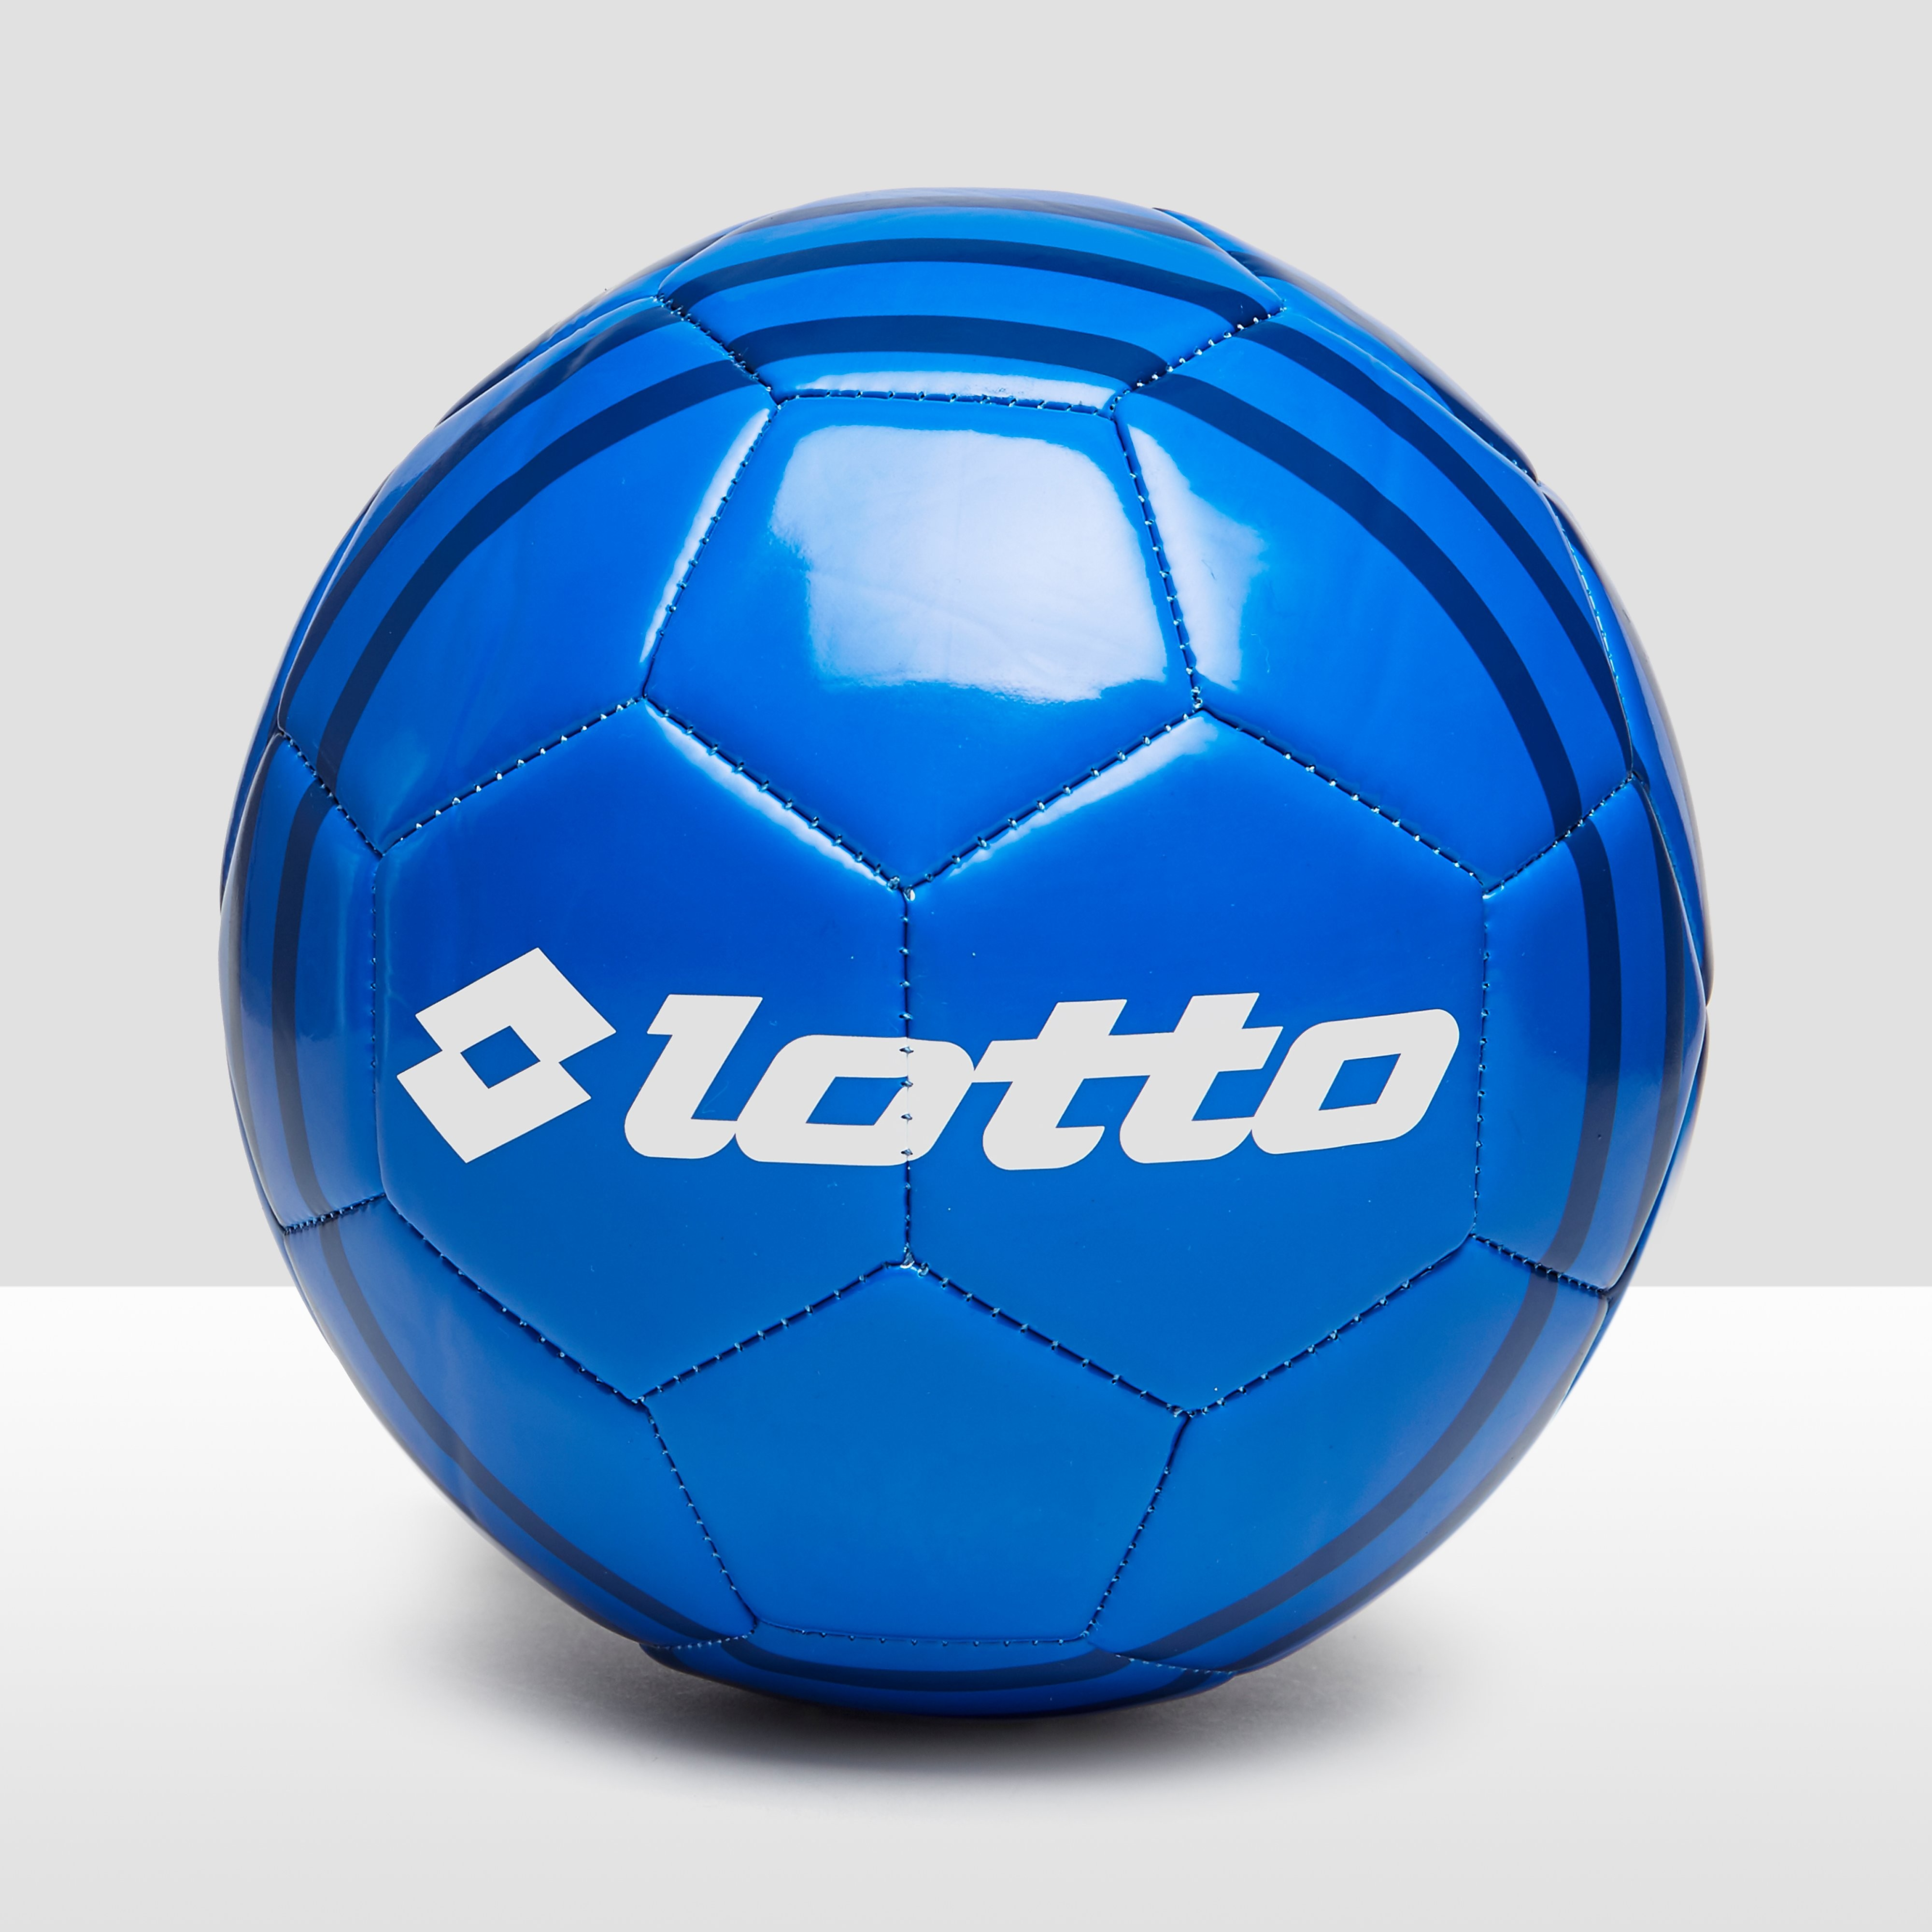 LOTTO INVADER VOETBAL BLAUW